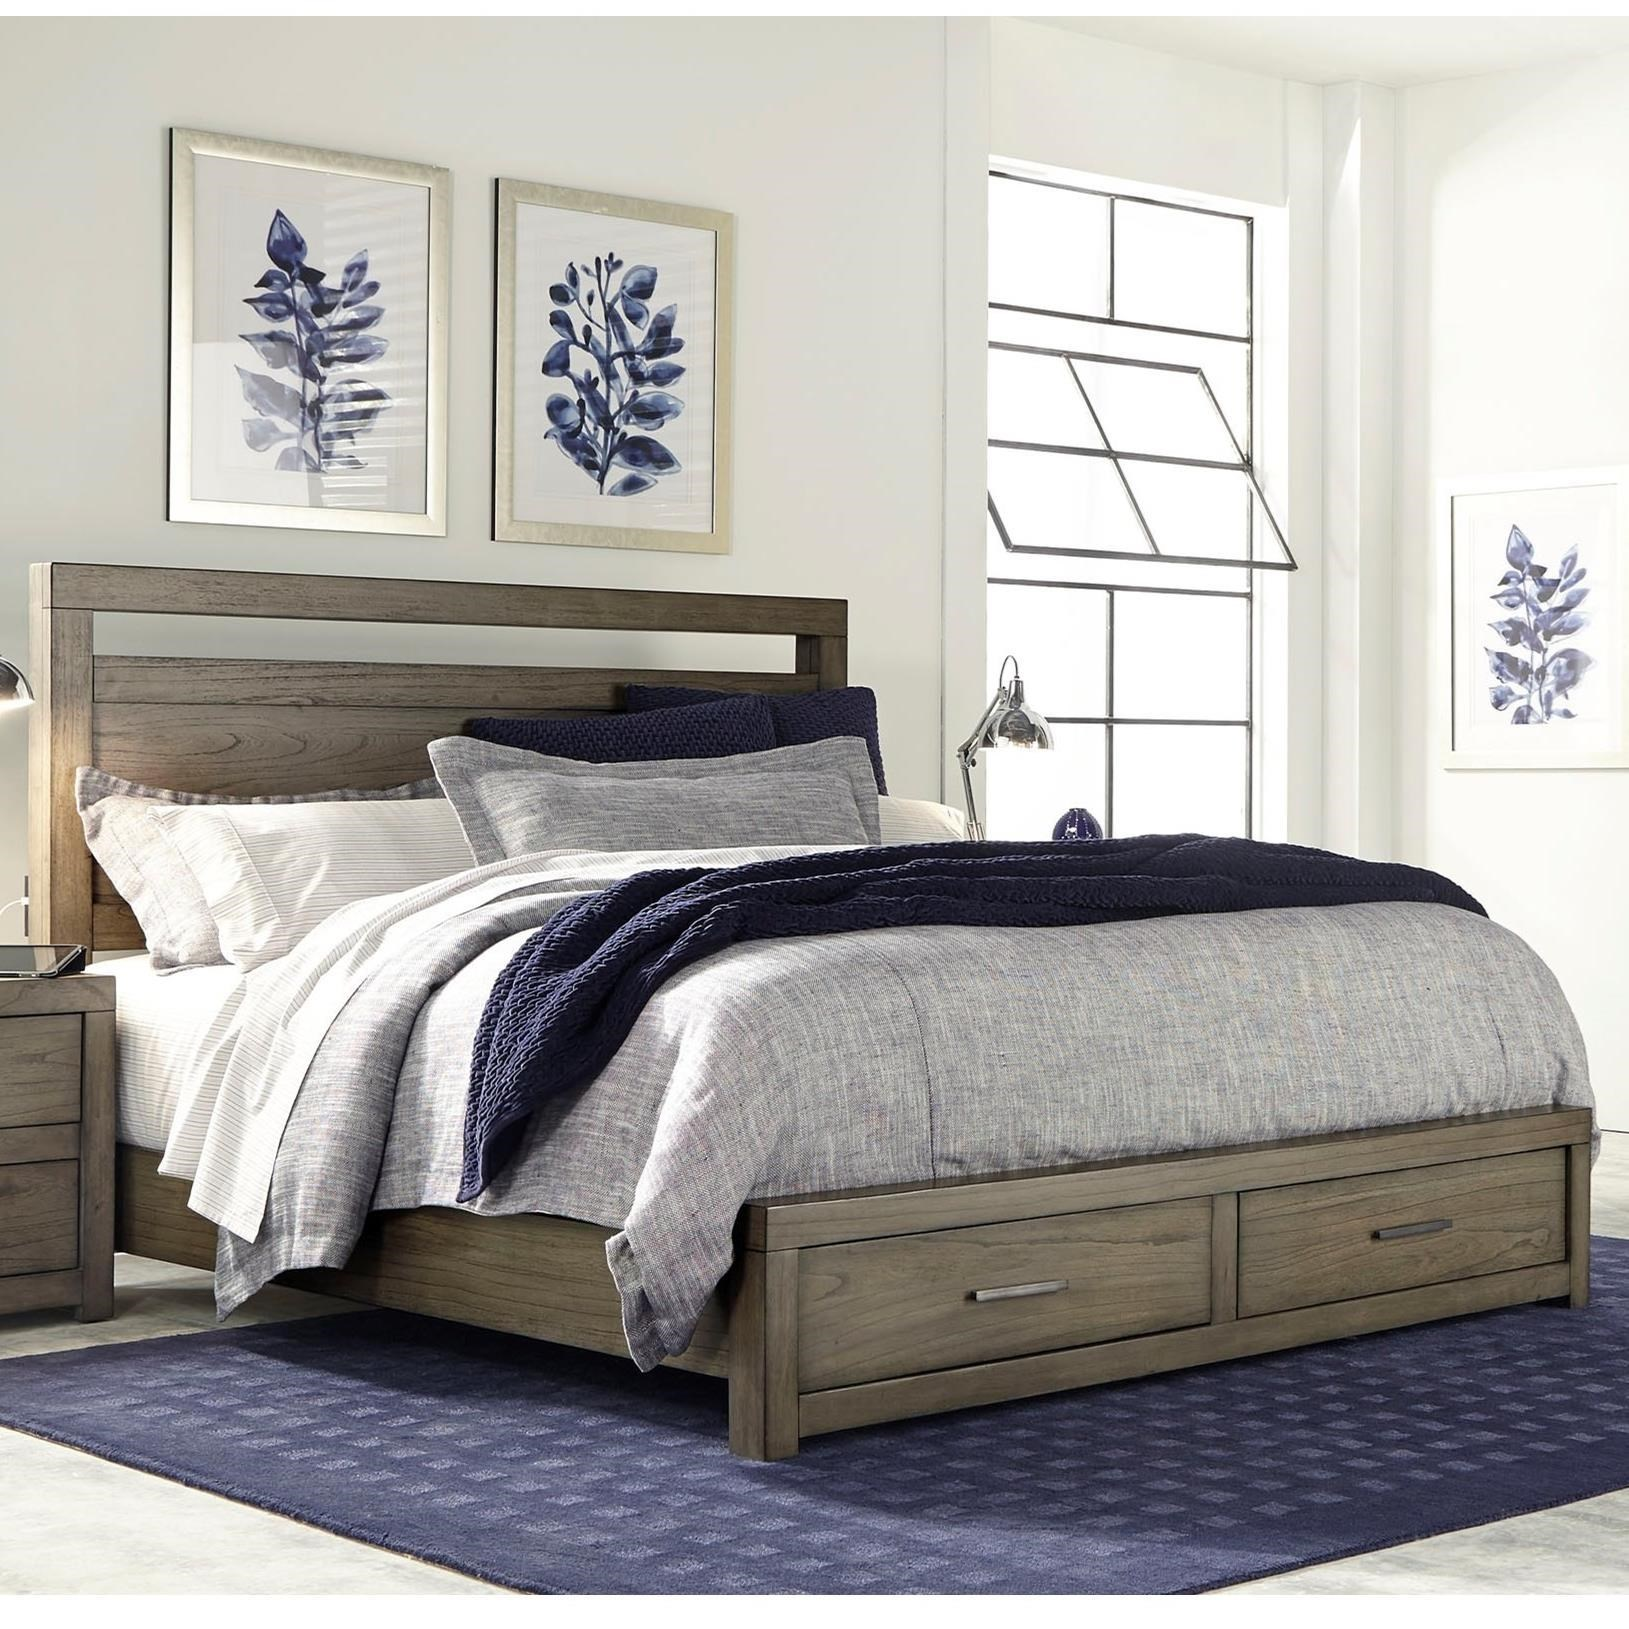 Queen Panel Storage Bed with USB Charging Outlets